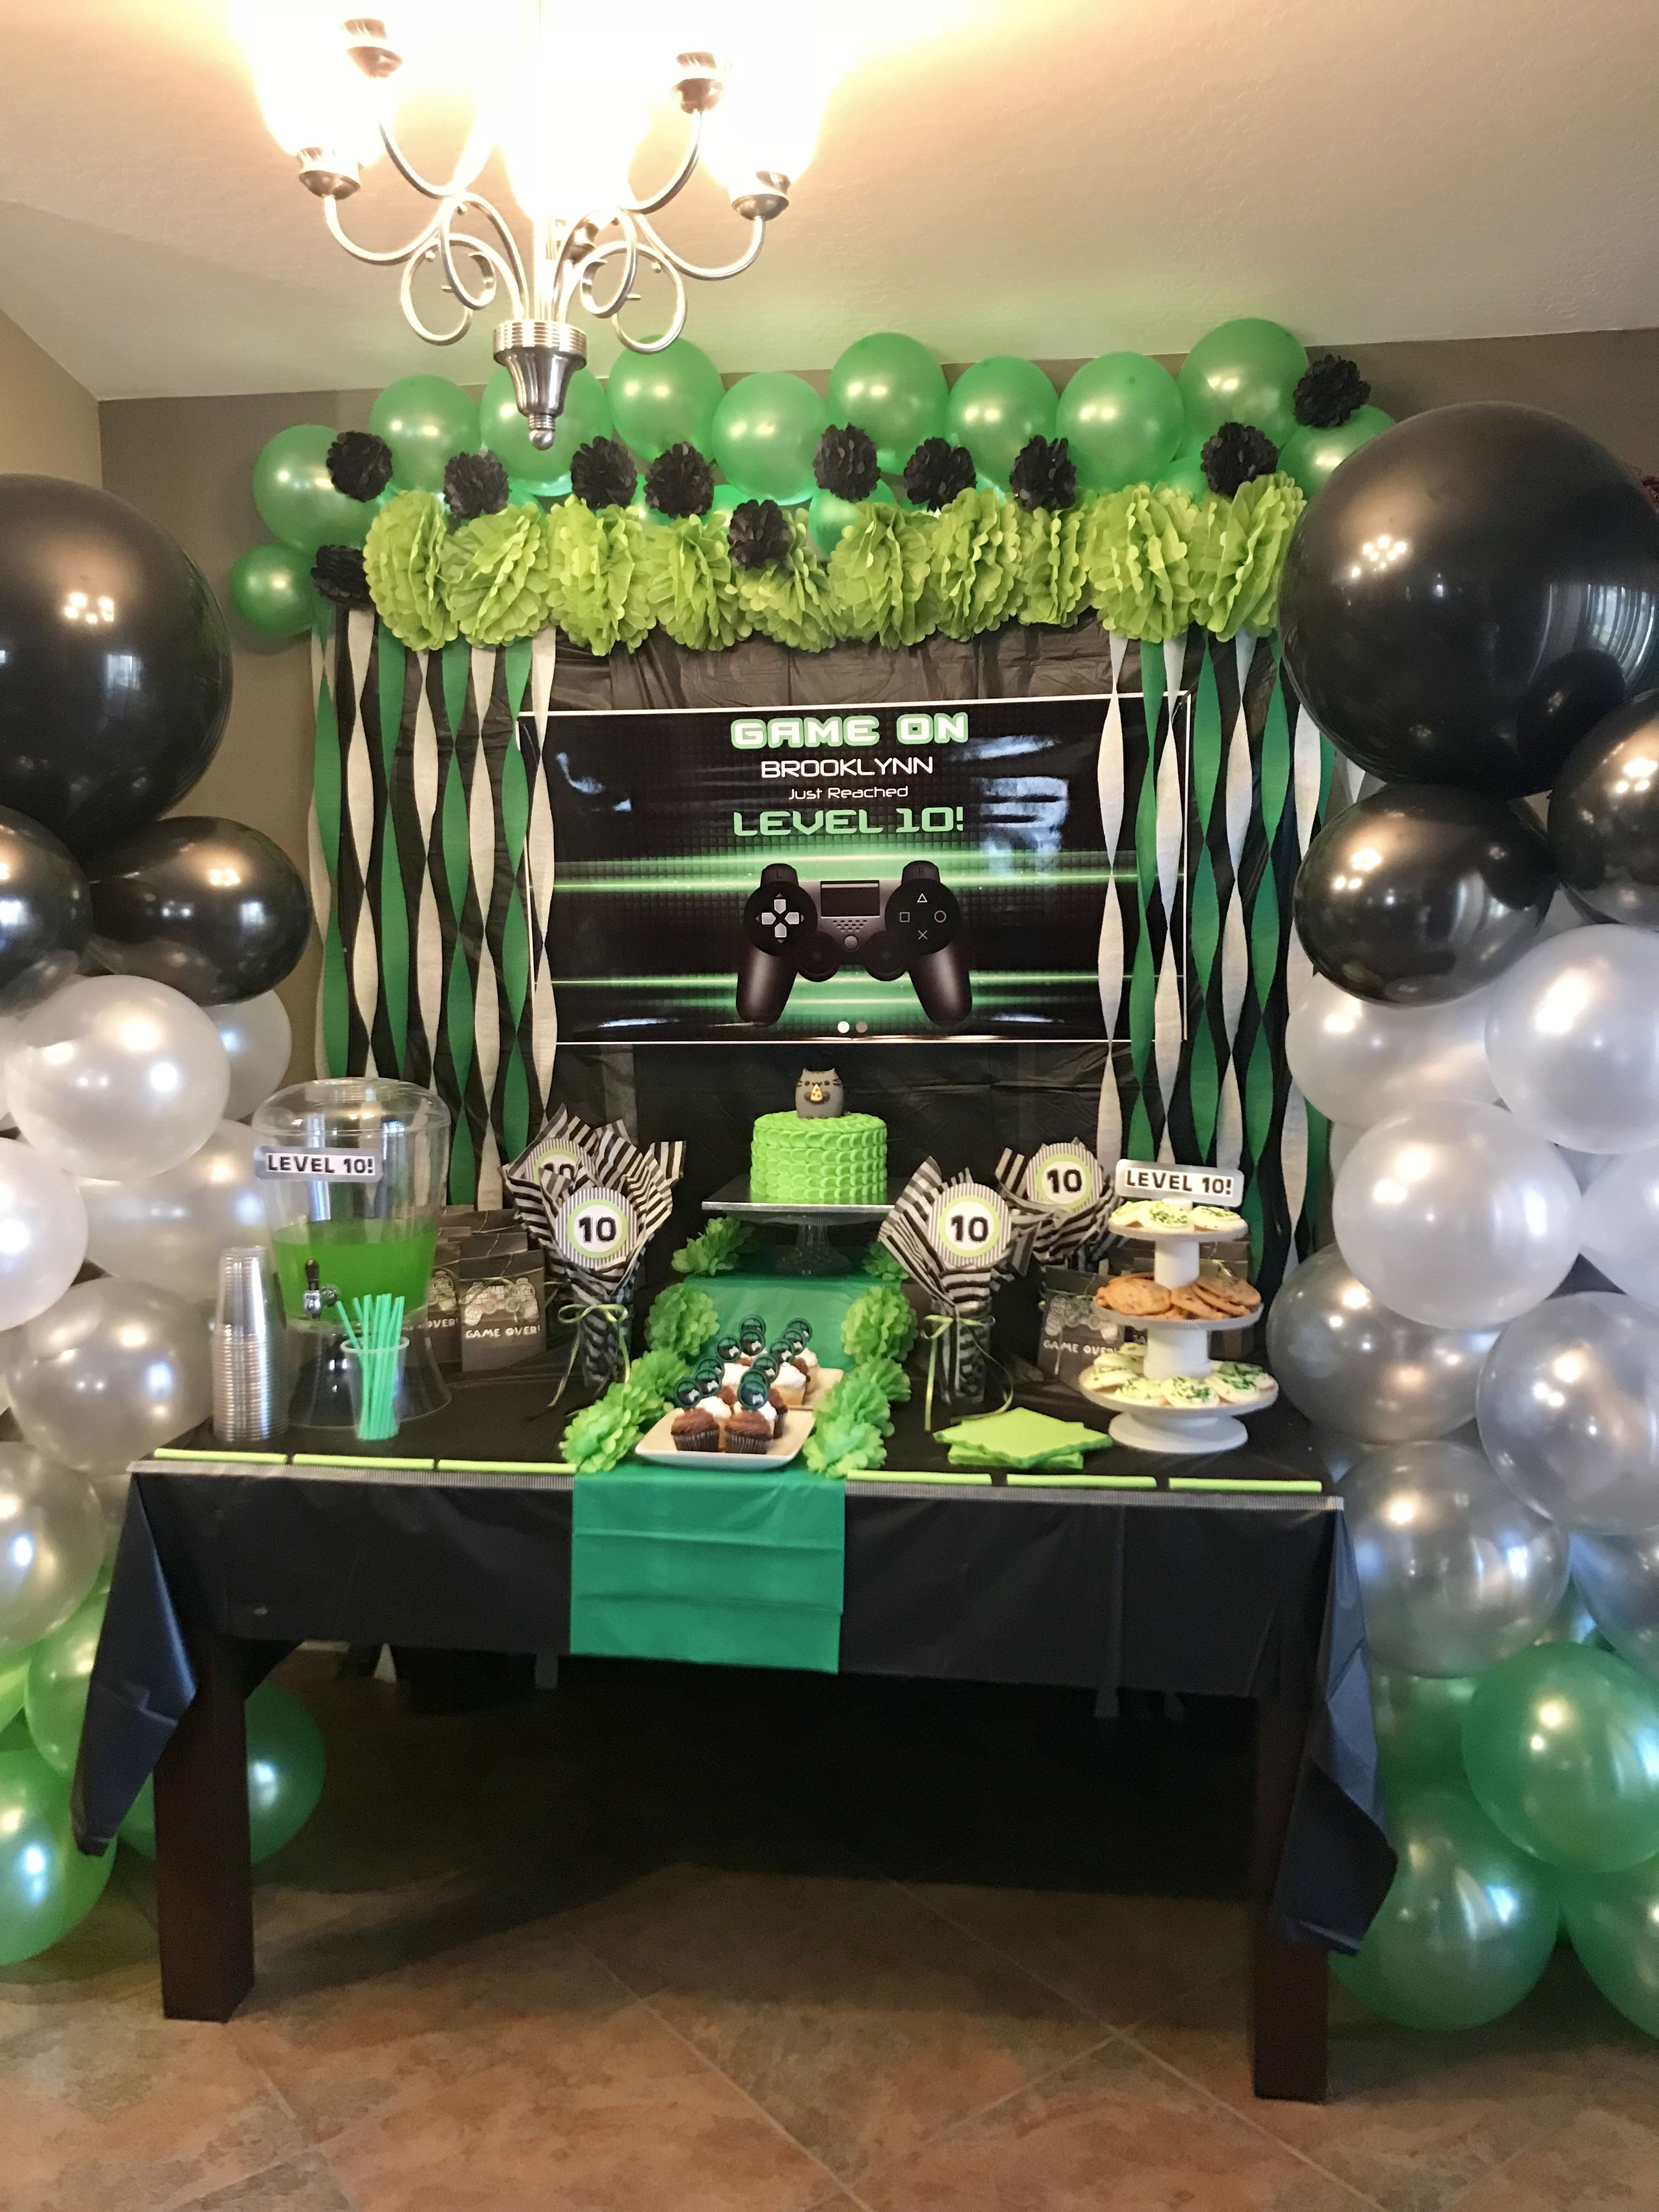 Xbox Party Video Game Birthday Party Decorations Video Games Birthday Party Xbox Party